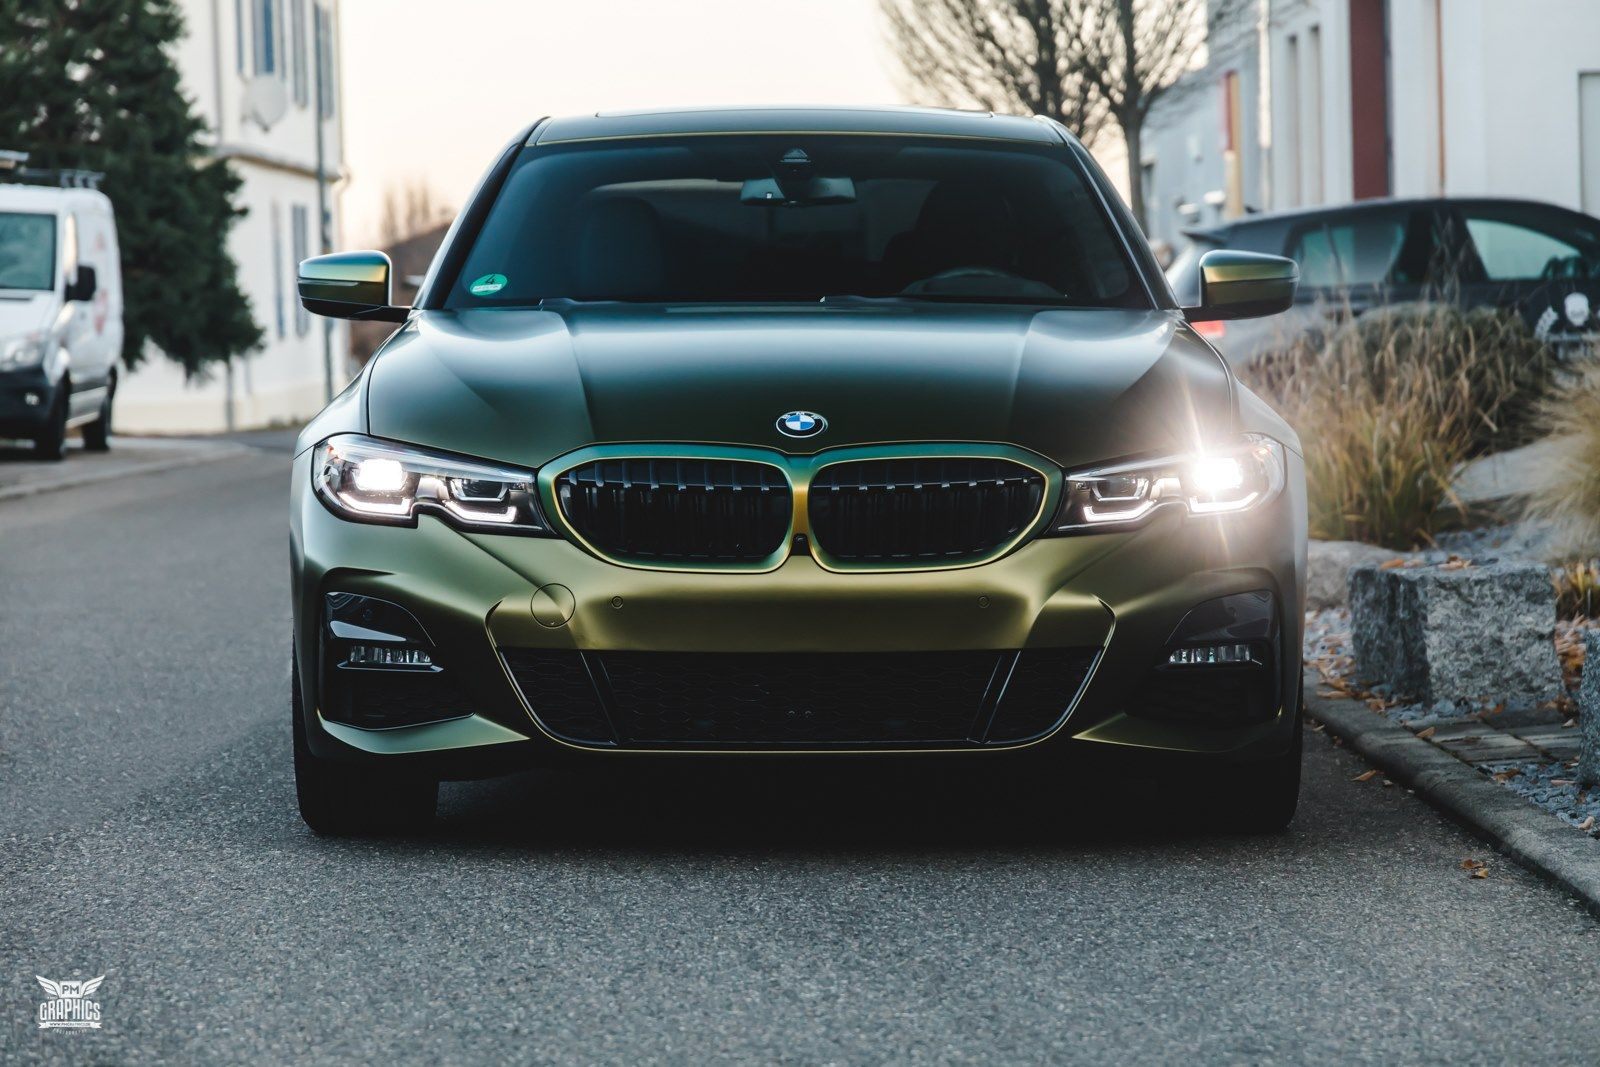 Check Out This Hope Green Wrapped G20 Bmw 3 Series In 2020 Bmw 3 Series Bmw Bmw Car Models